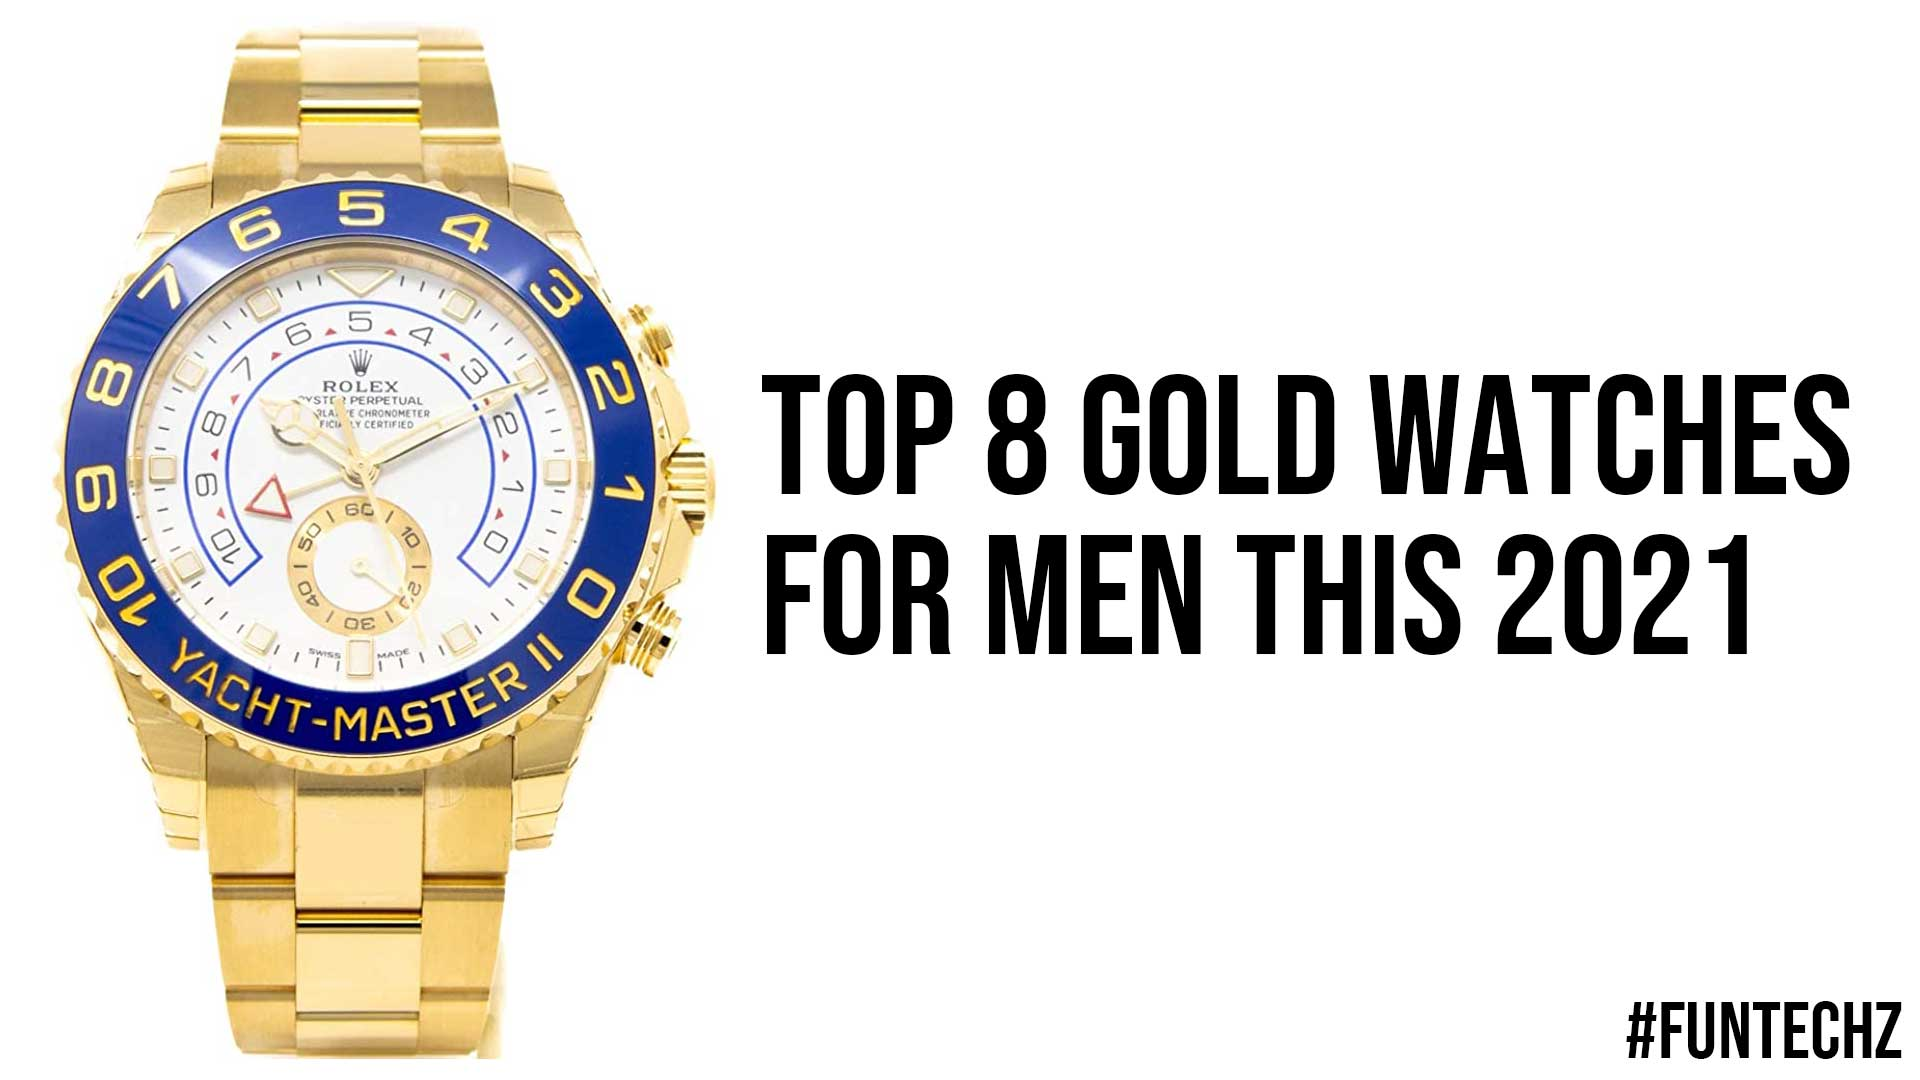 Top 8 Gold Watches For Men This 2021